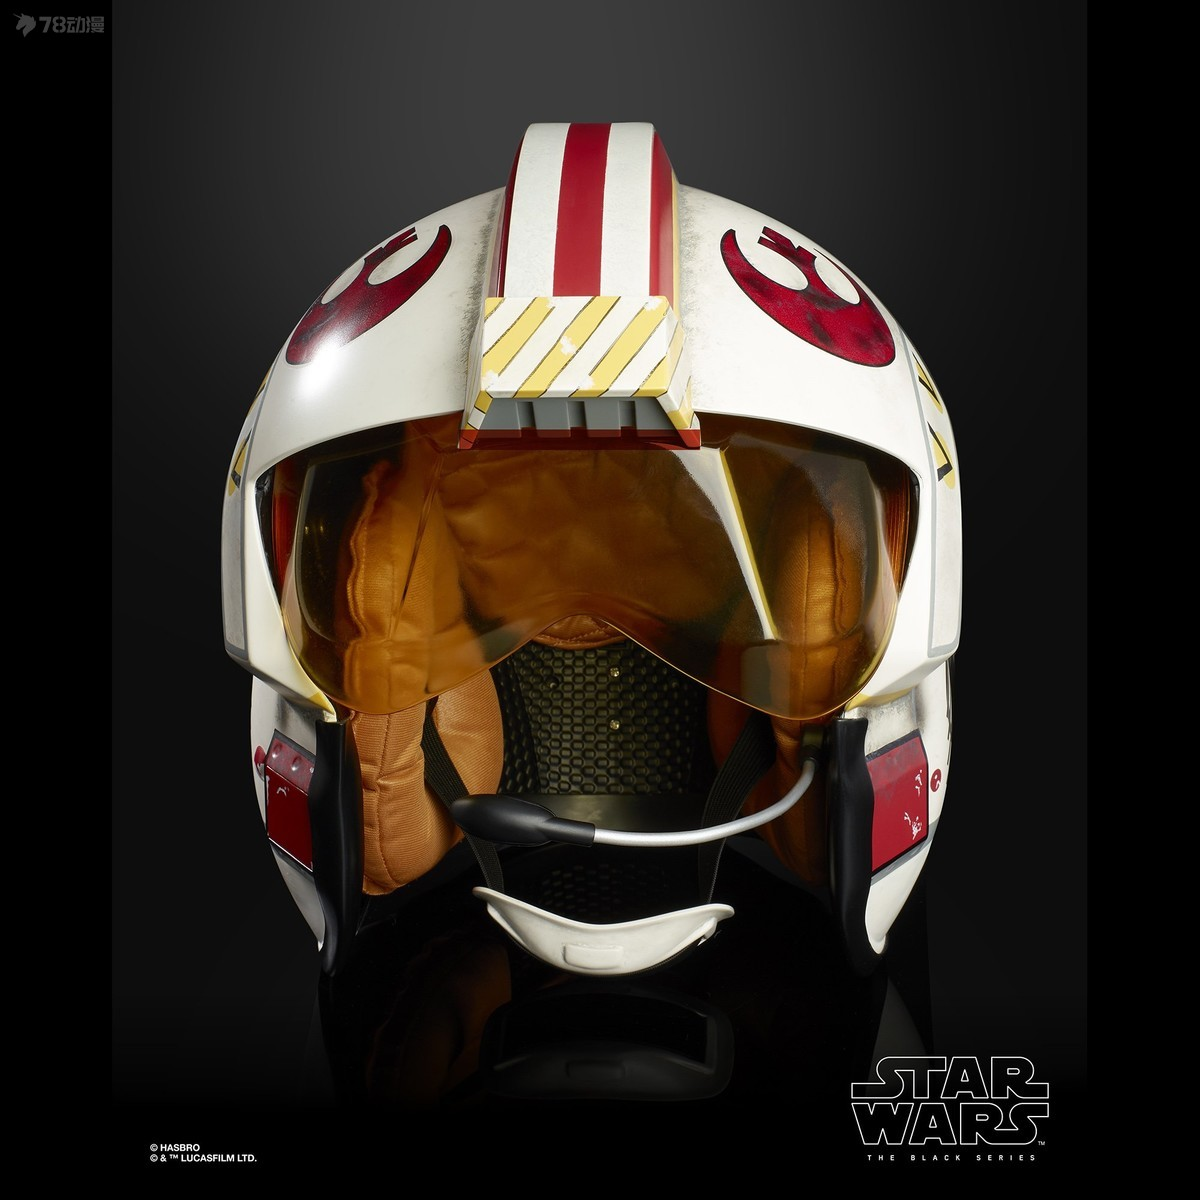 E5808_Star_Wars_The_Black_Series_Luke_Skywalker_Battle_Simulation_Helmet_04_2000x.jpg